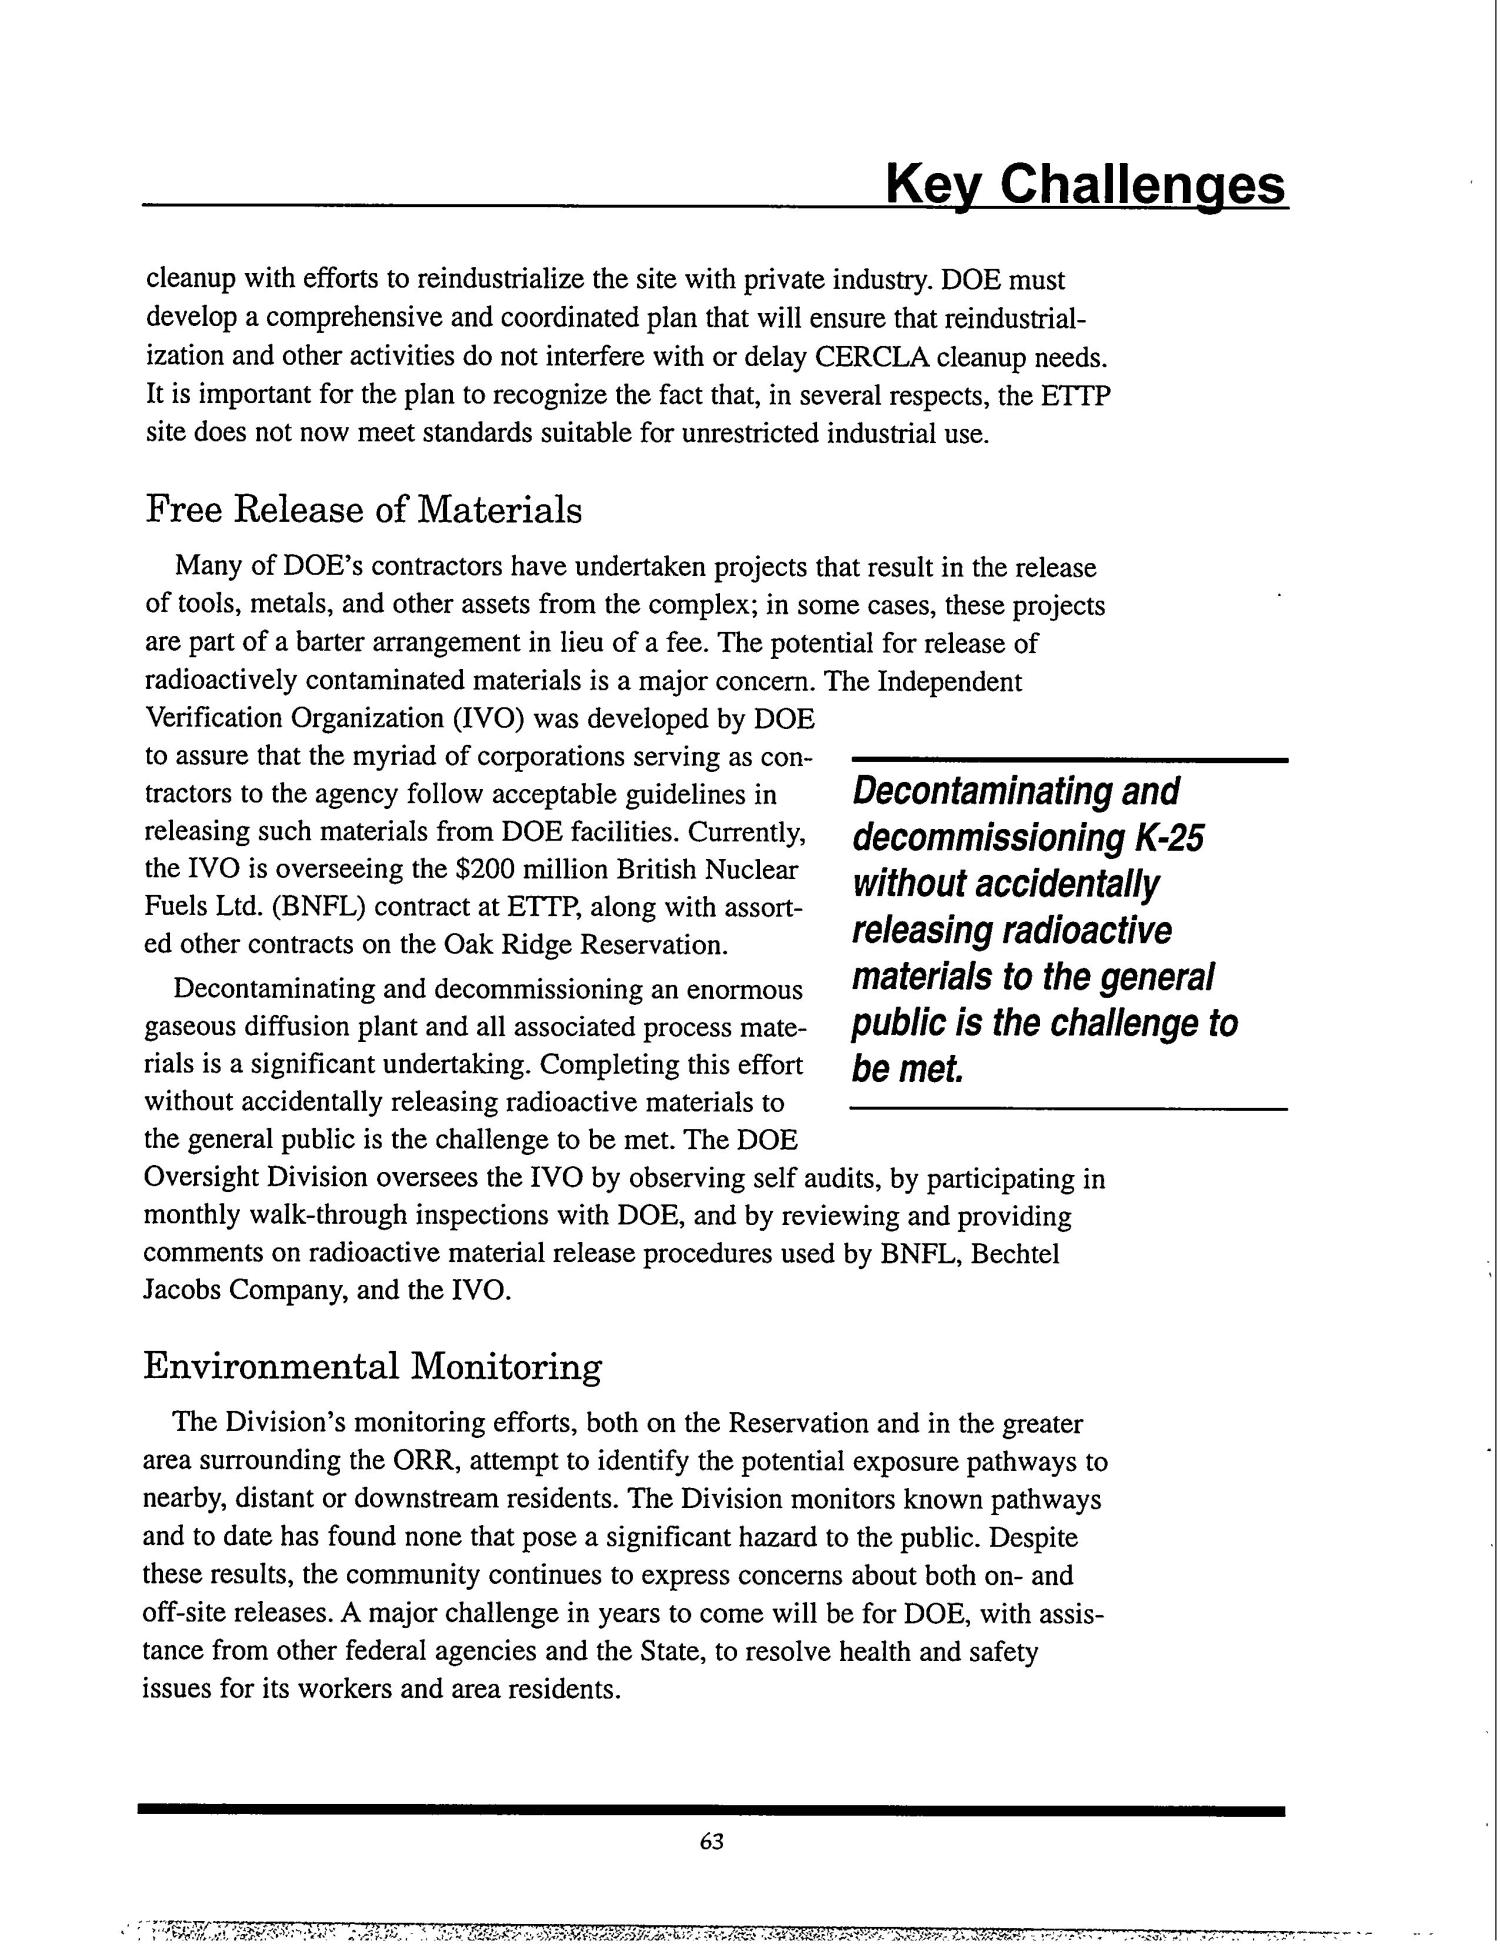 Tennessee Department of Environment and Conservation - DOE Oversight Division. Status Report to the Public - December 1999                                                                                                      [Sequence #]: 67 of 72